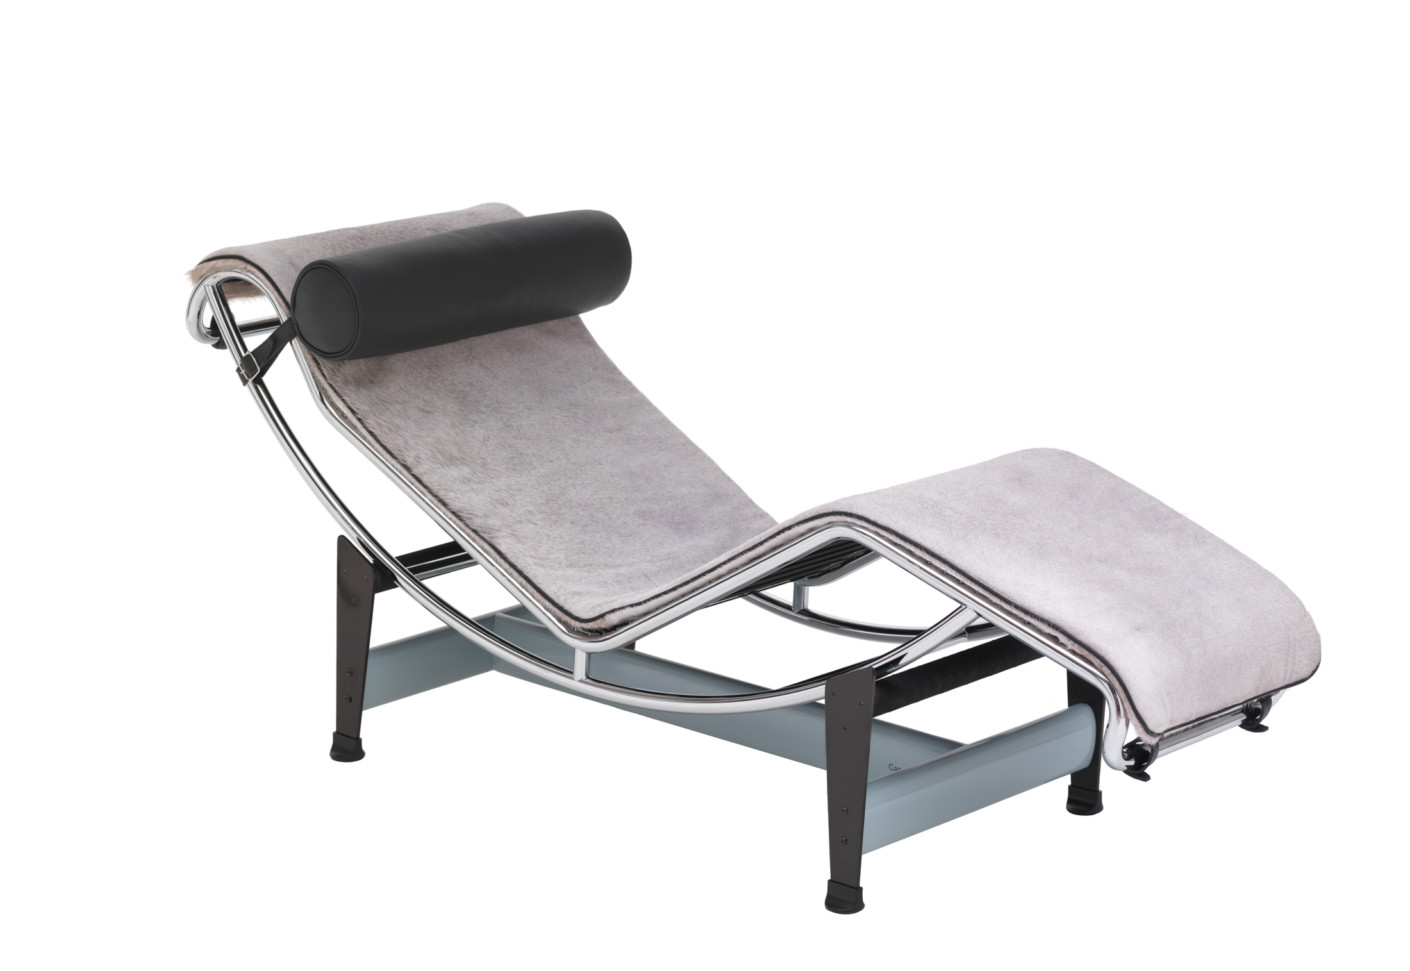 Lc4 villa church chaise longue by cassina stylepark for Chaise longue history